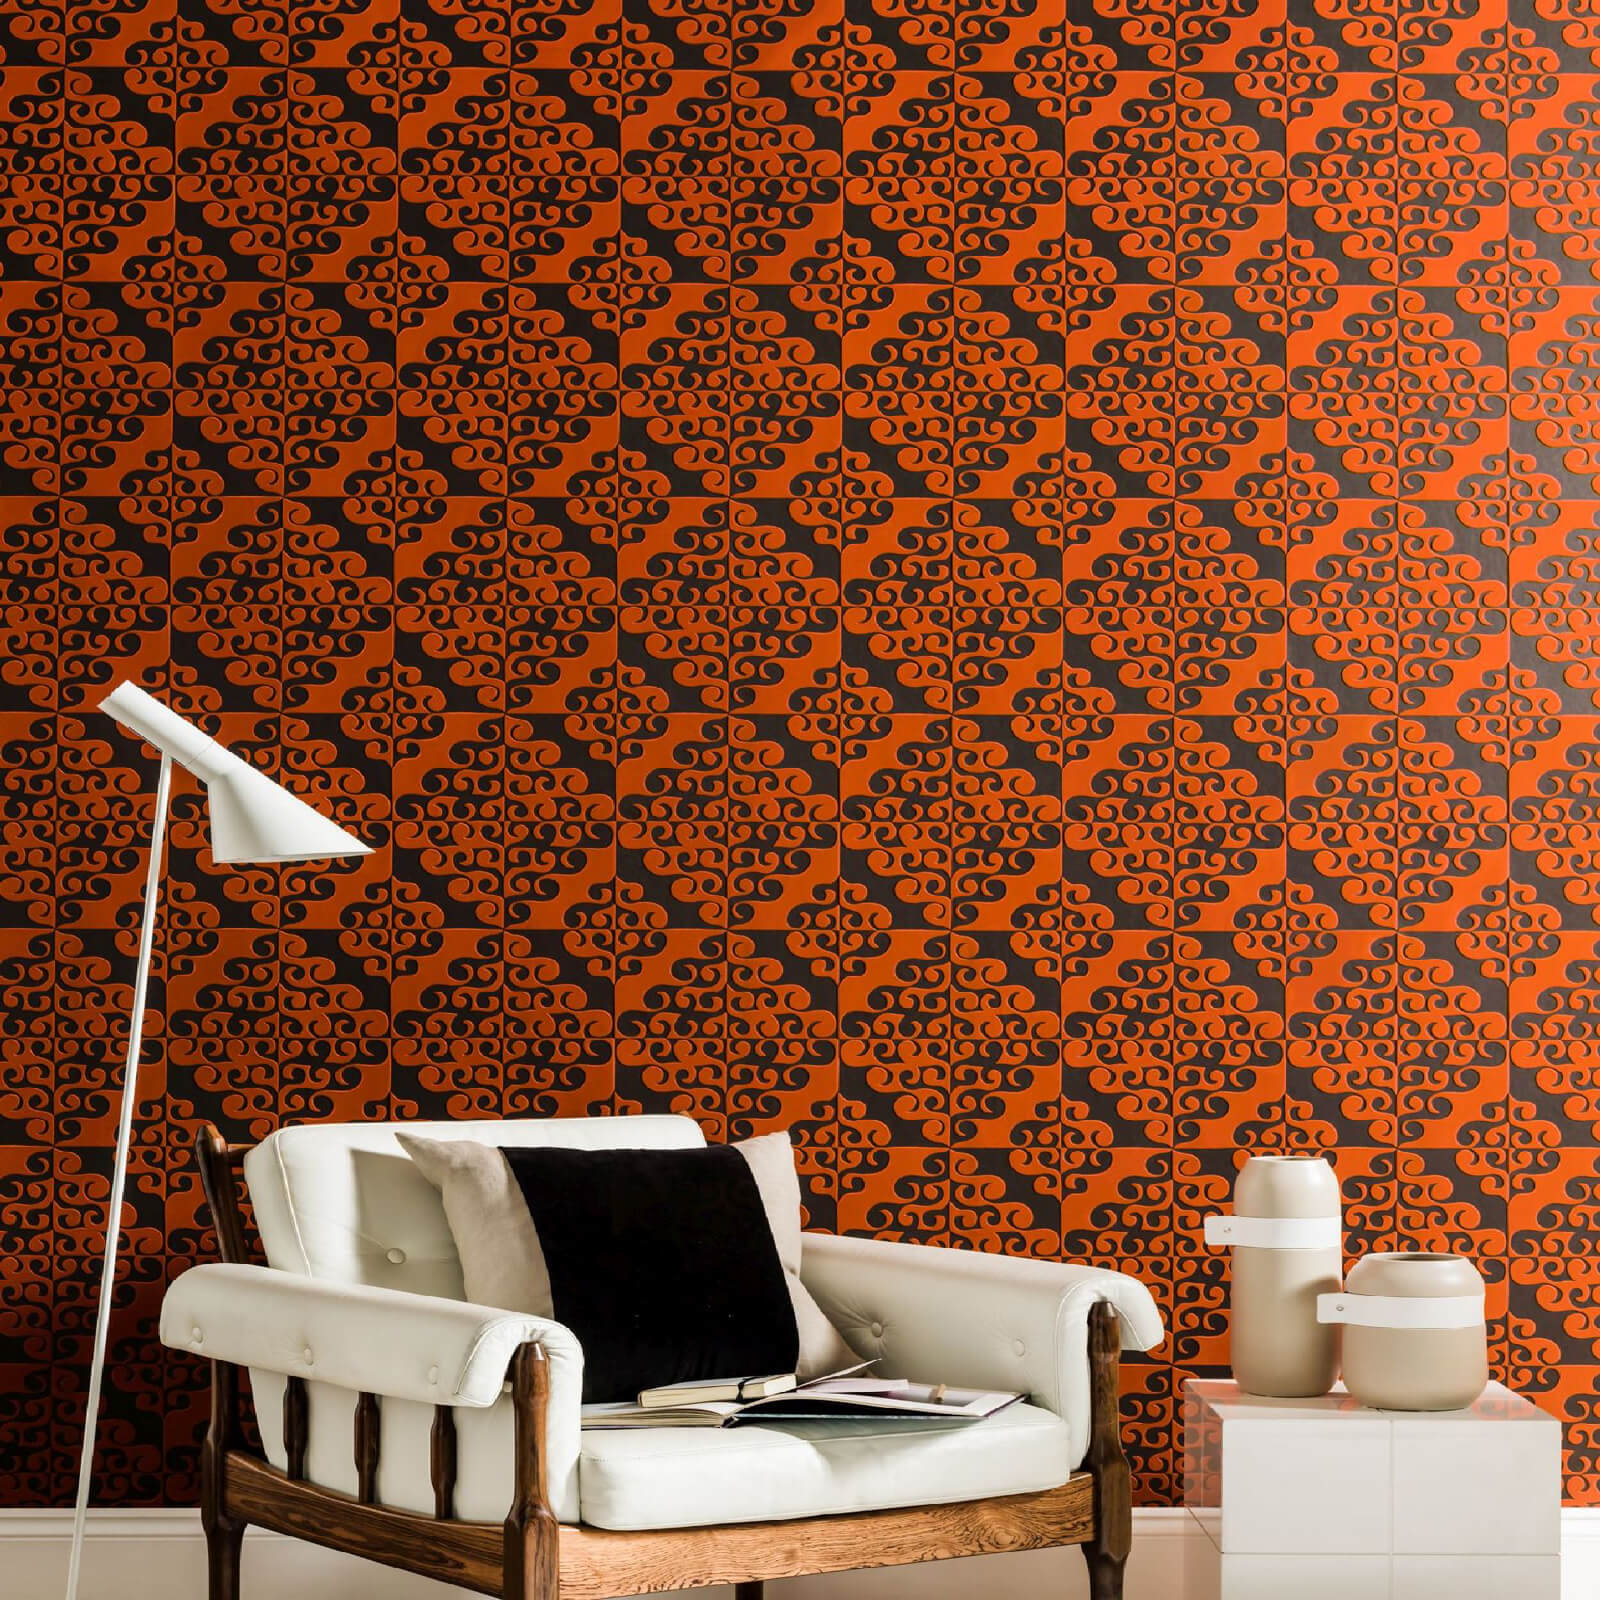 Kelly Hoppen Geometric Twist Flock Chocolate/Orange Wallpaper